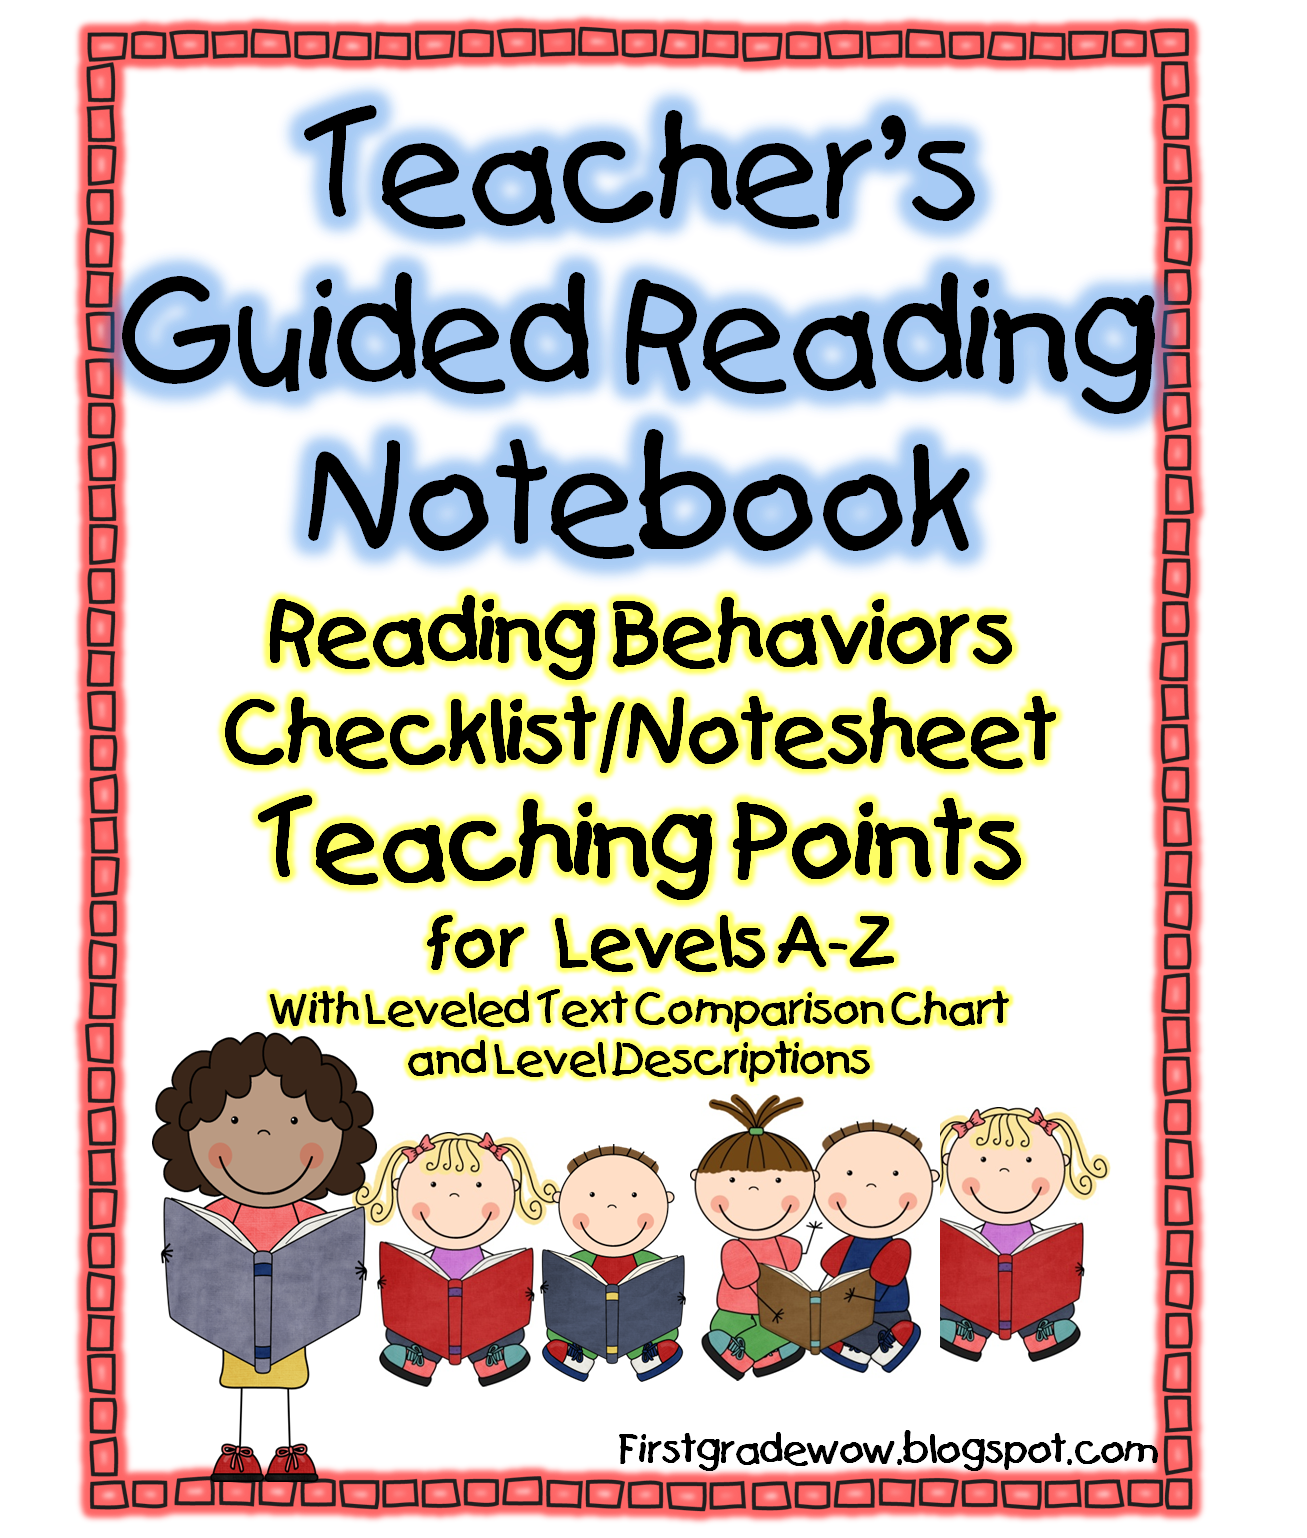 Worksheet First Grade Level Reading first grade wow guided reading teachers notebook levels a z z